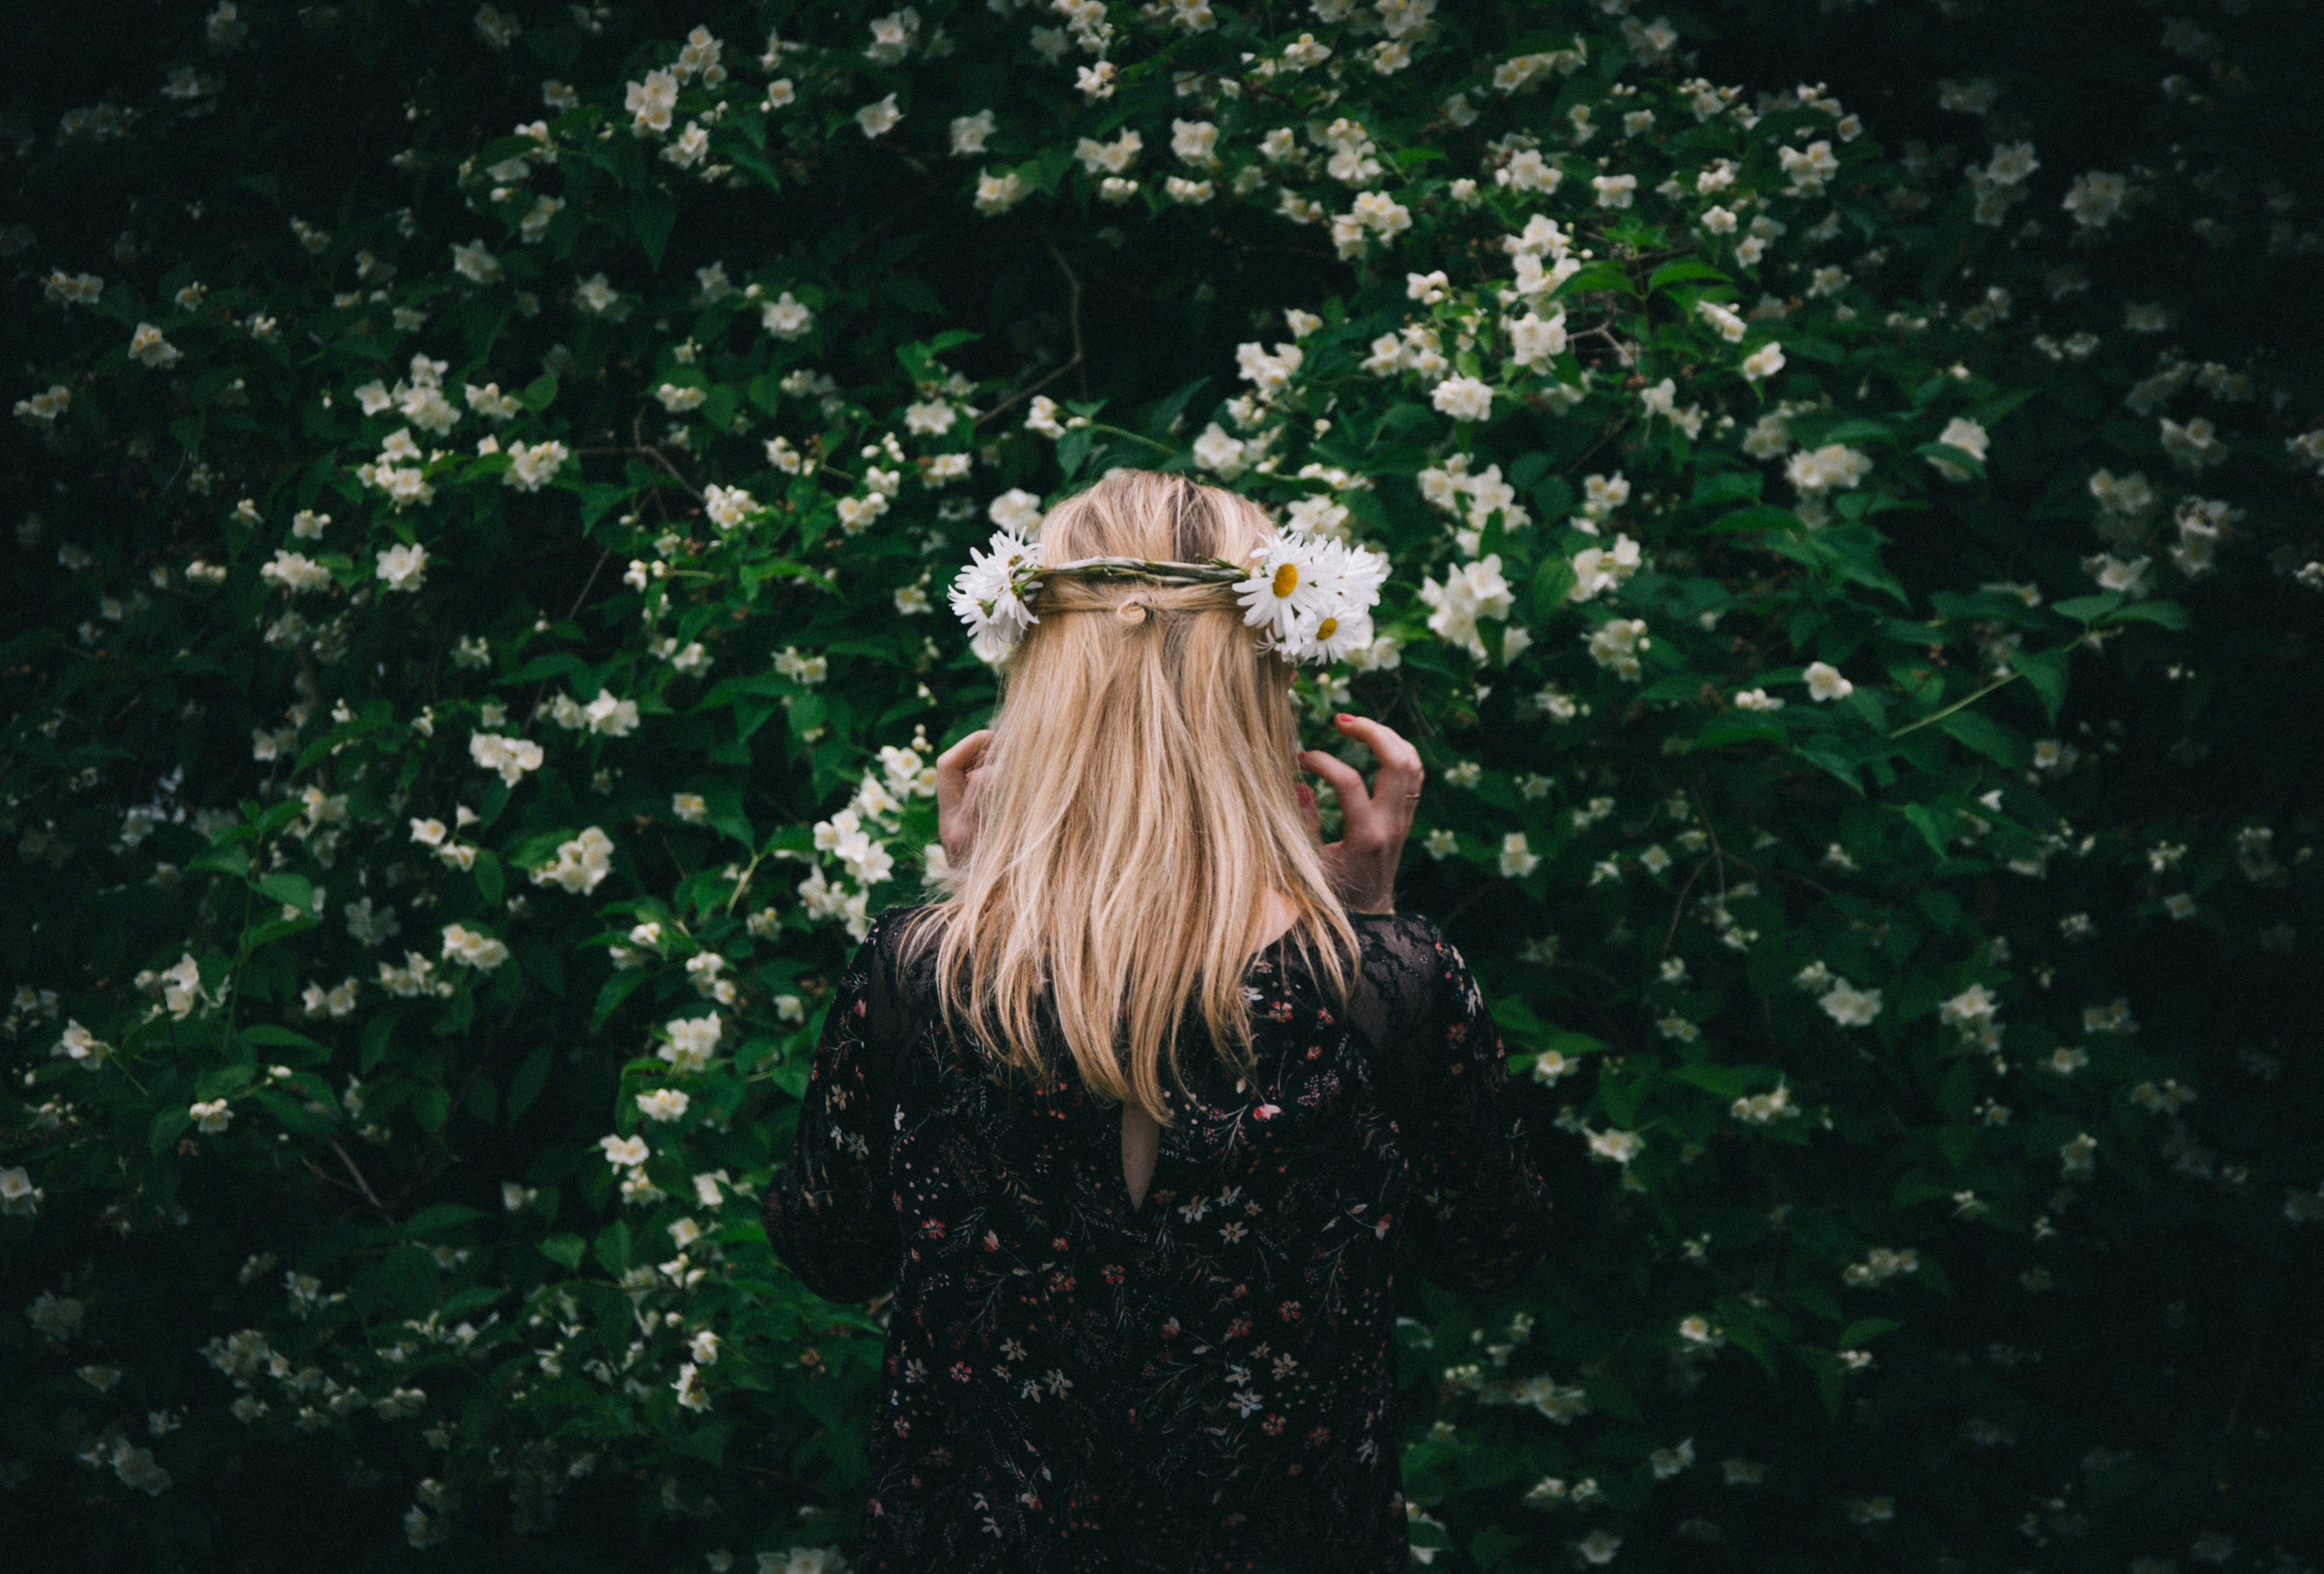 A blonde woman in a crown of white flowers in a green garden